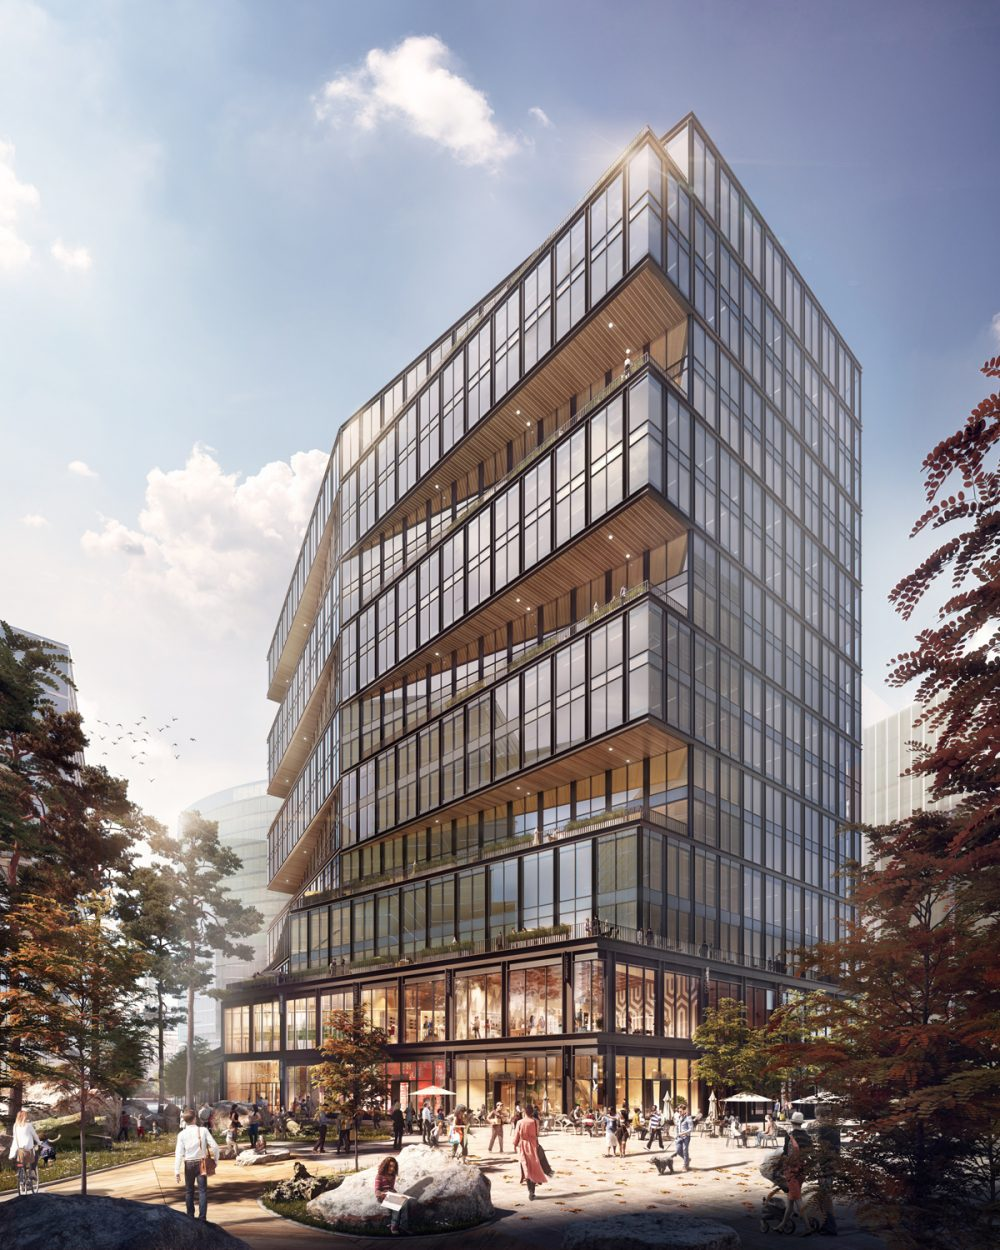 Amazon's new office in Boston's Seaport District will create 2,000 tech jobs in the city. It is expected to open in 2021. (Courtesy Amazon/Business Wire)